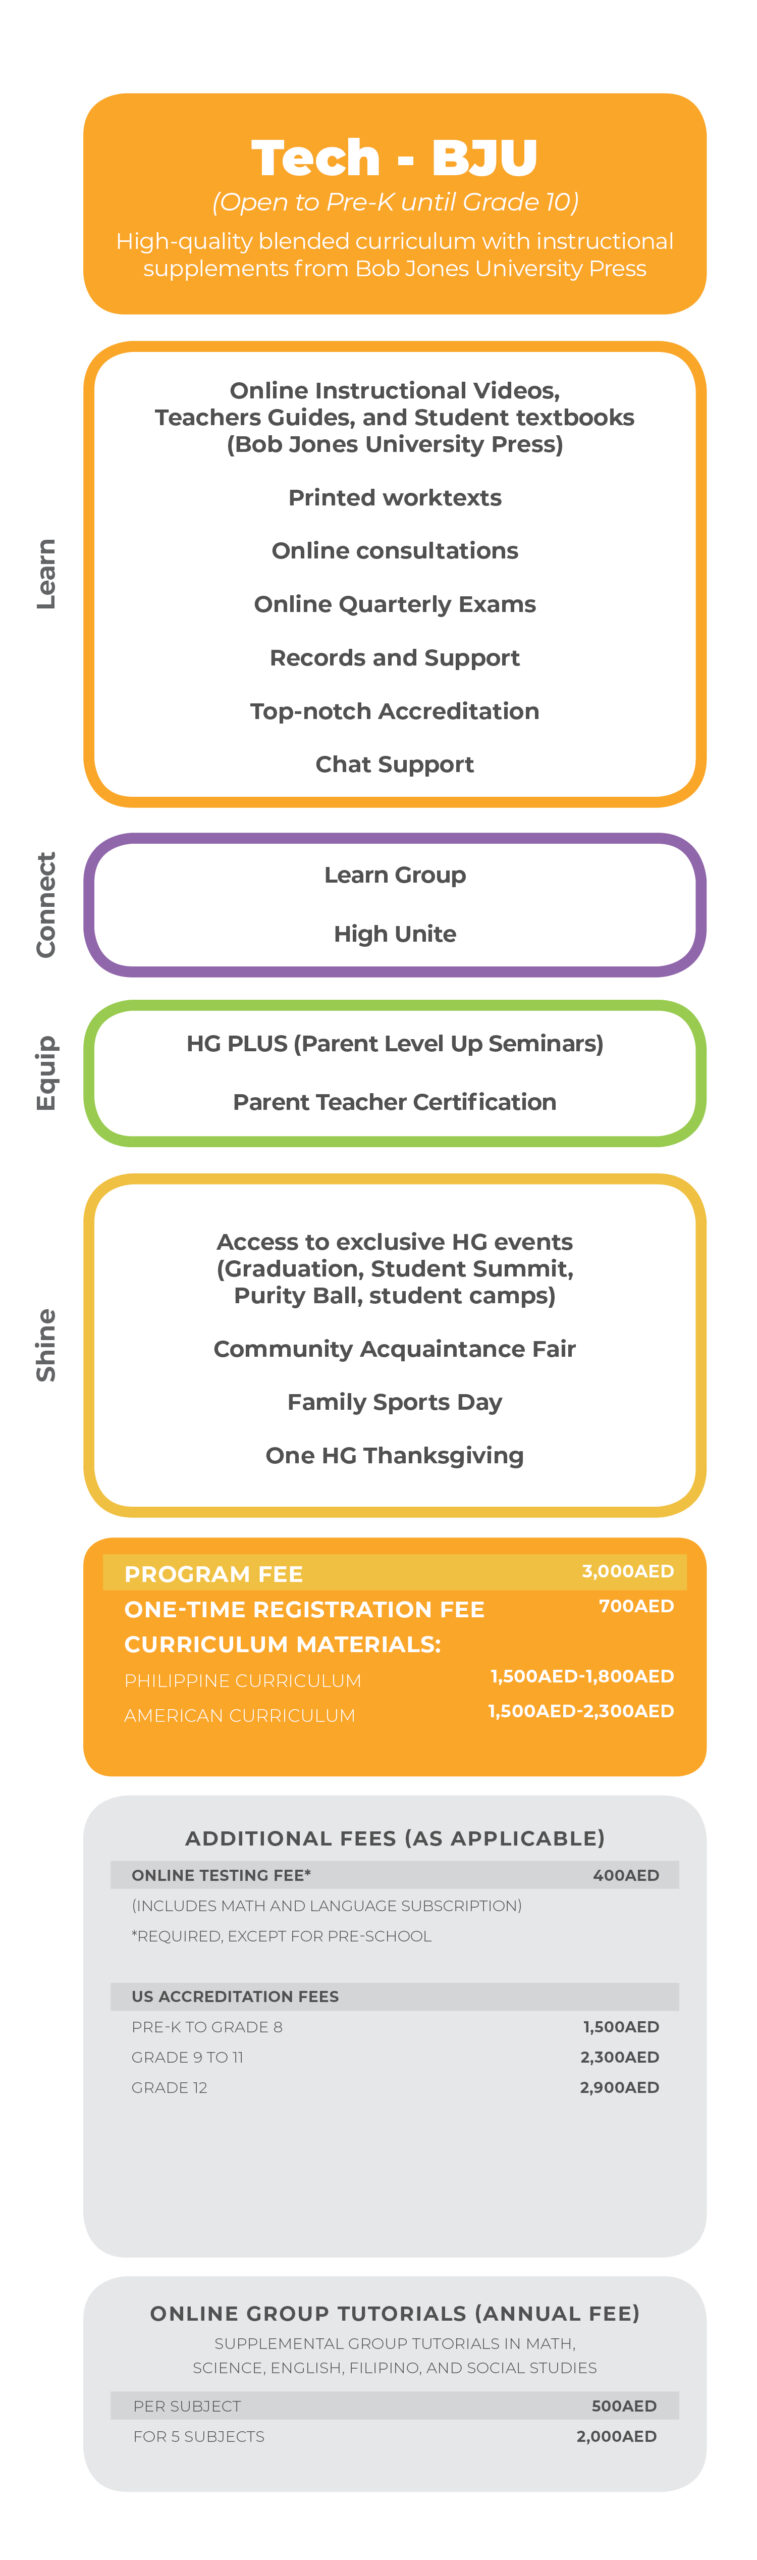 HGME BJU with pricing 08202020